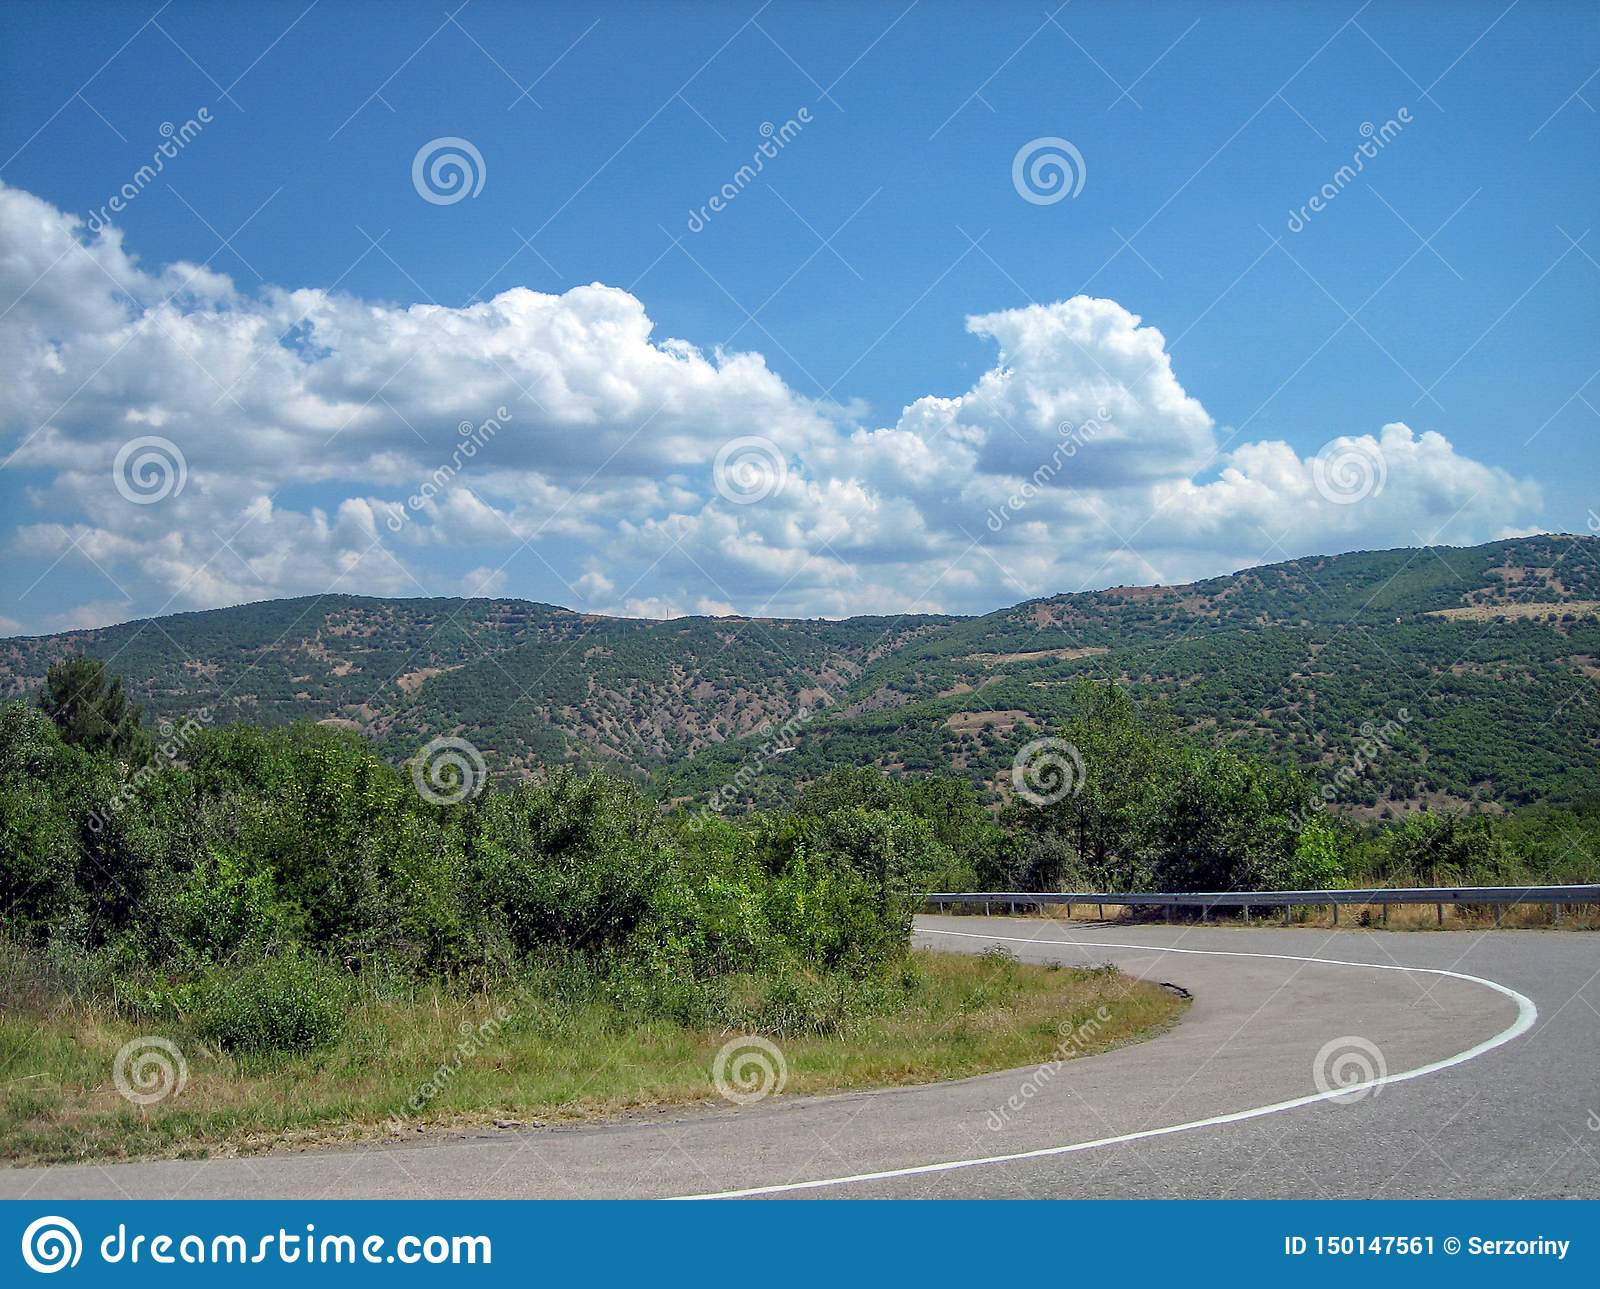 Empty road in the southern hilly-mountainous area on a hot summer day